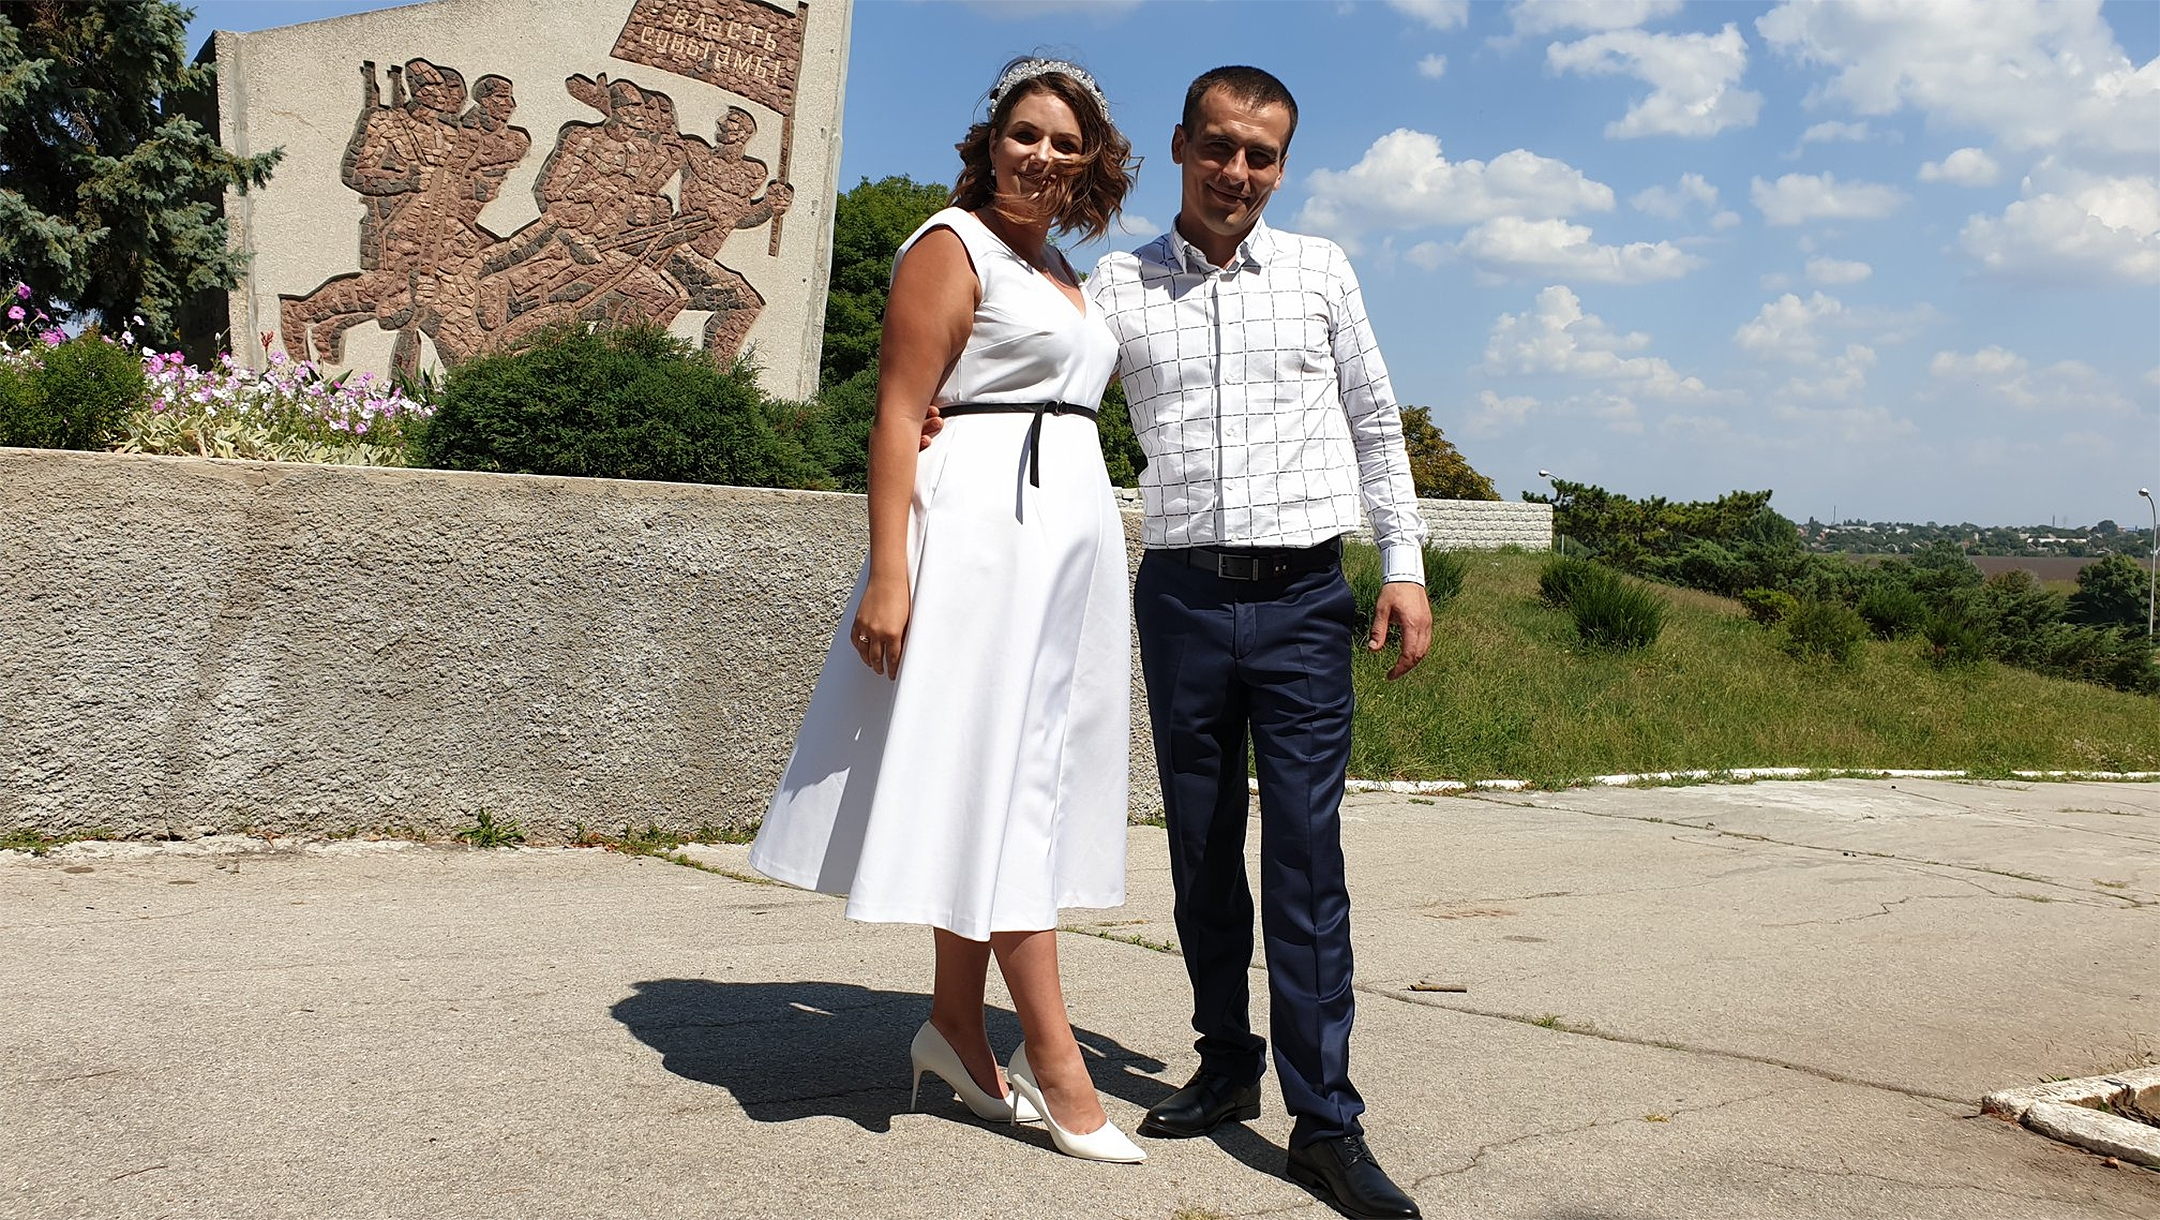 Anastasia and Vitaly posing for the wedding photos in Tiraspol, Transnistria on Aug. 24, 2019. (Courtesy of Roman Yanushevsky/Channel 9)